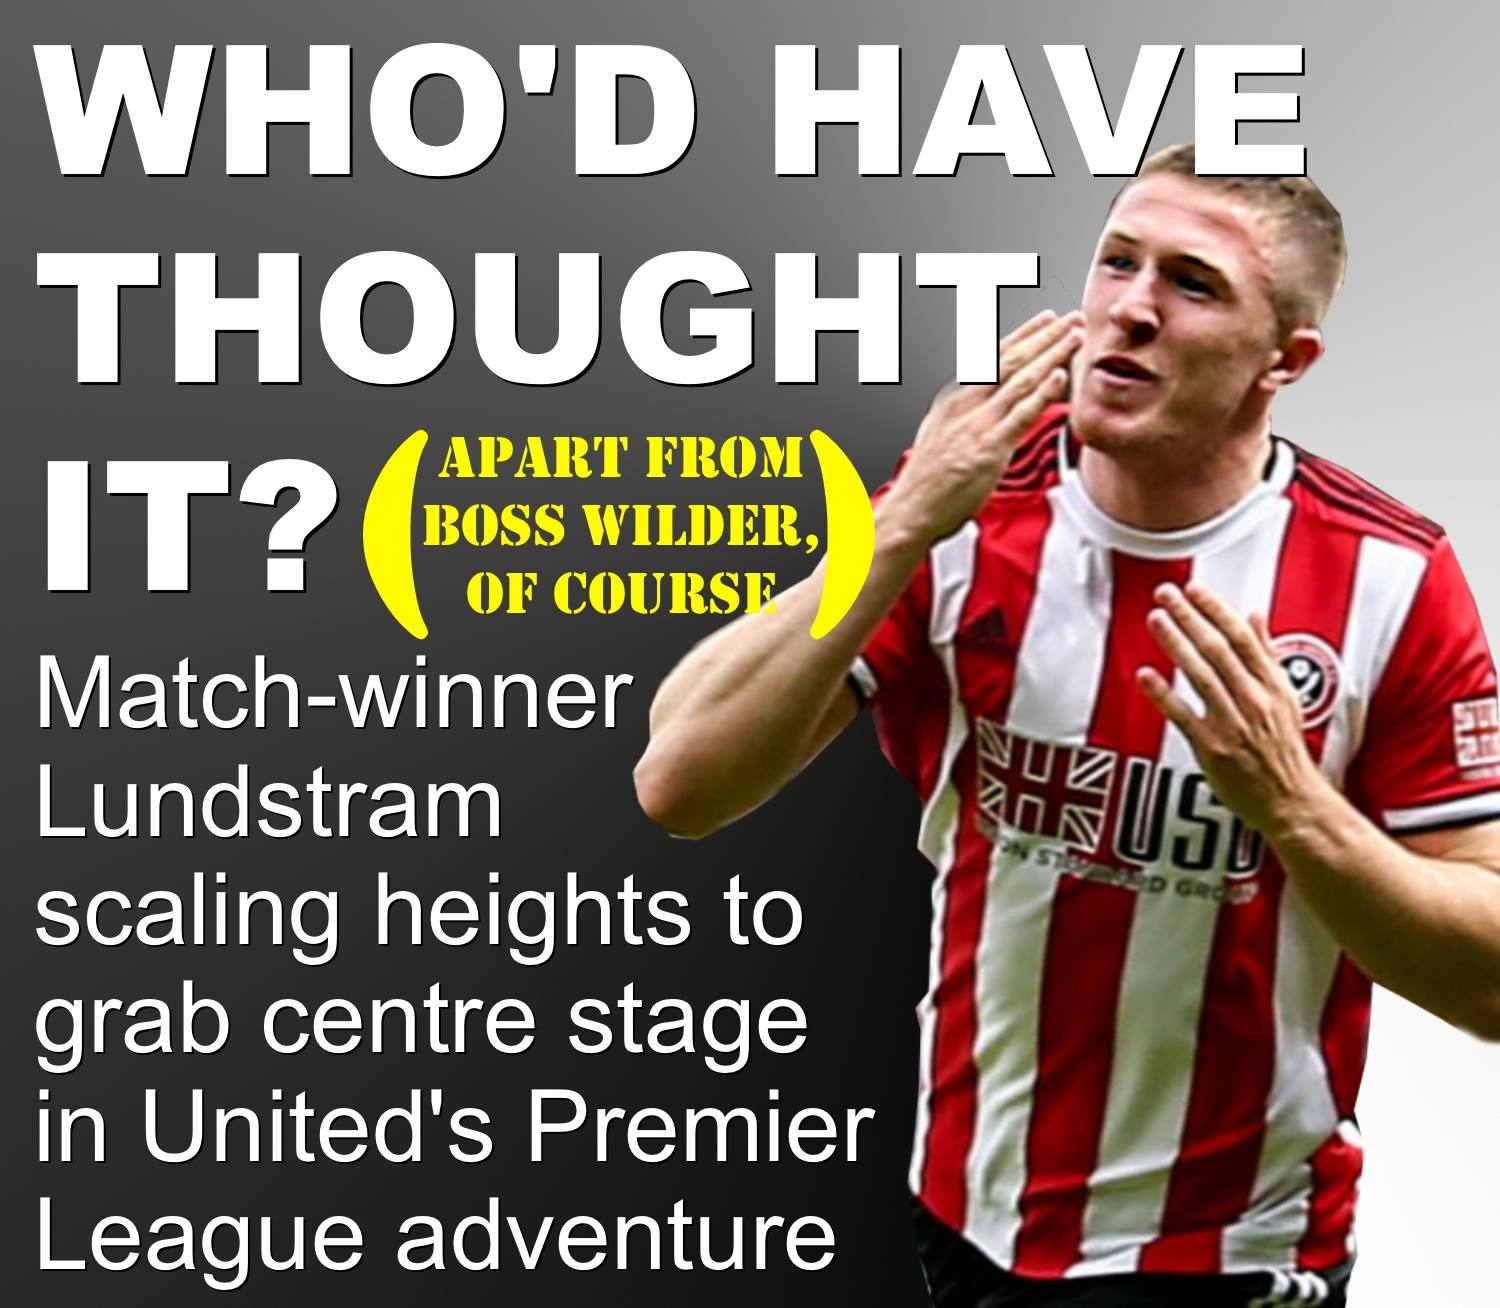 Sheffield United's John Lundstram is the unlikely player who is taking the Blades Premier League assault by storm.